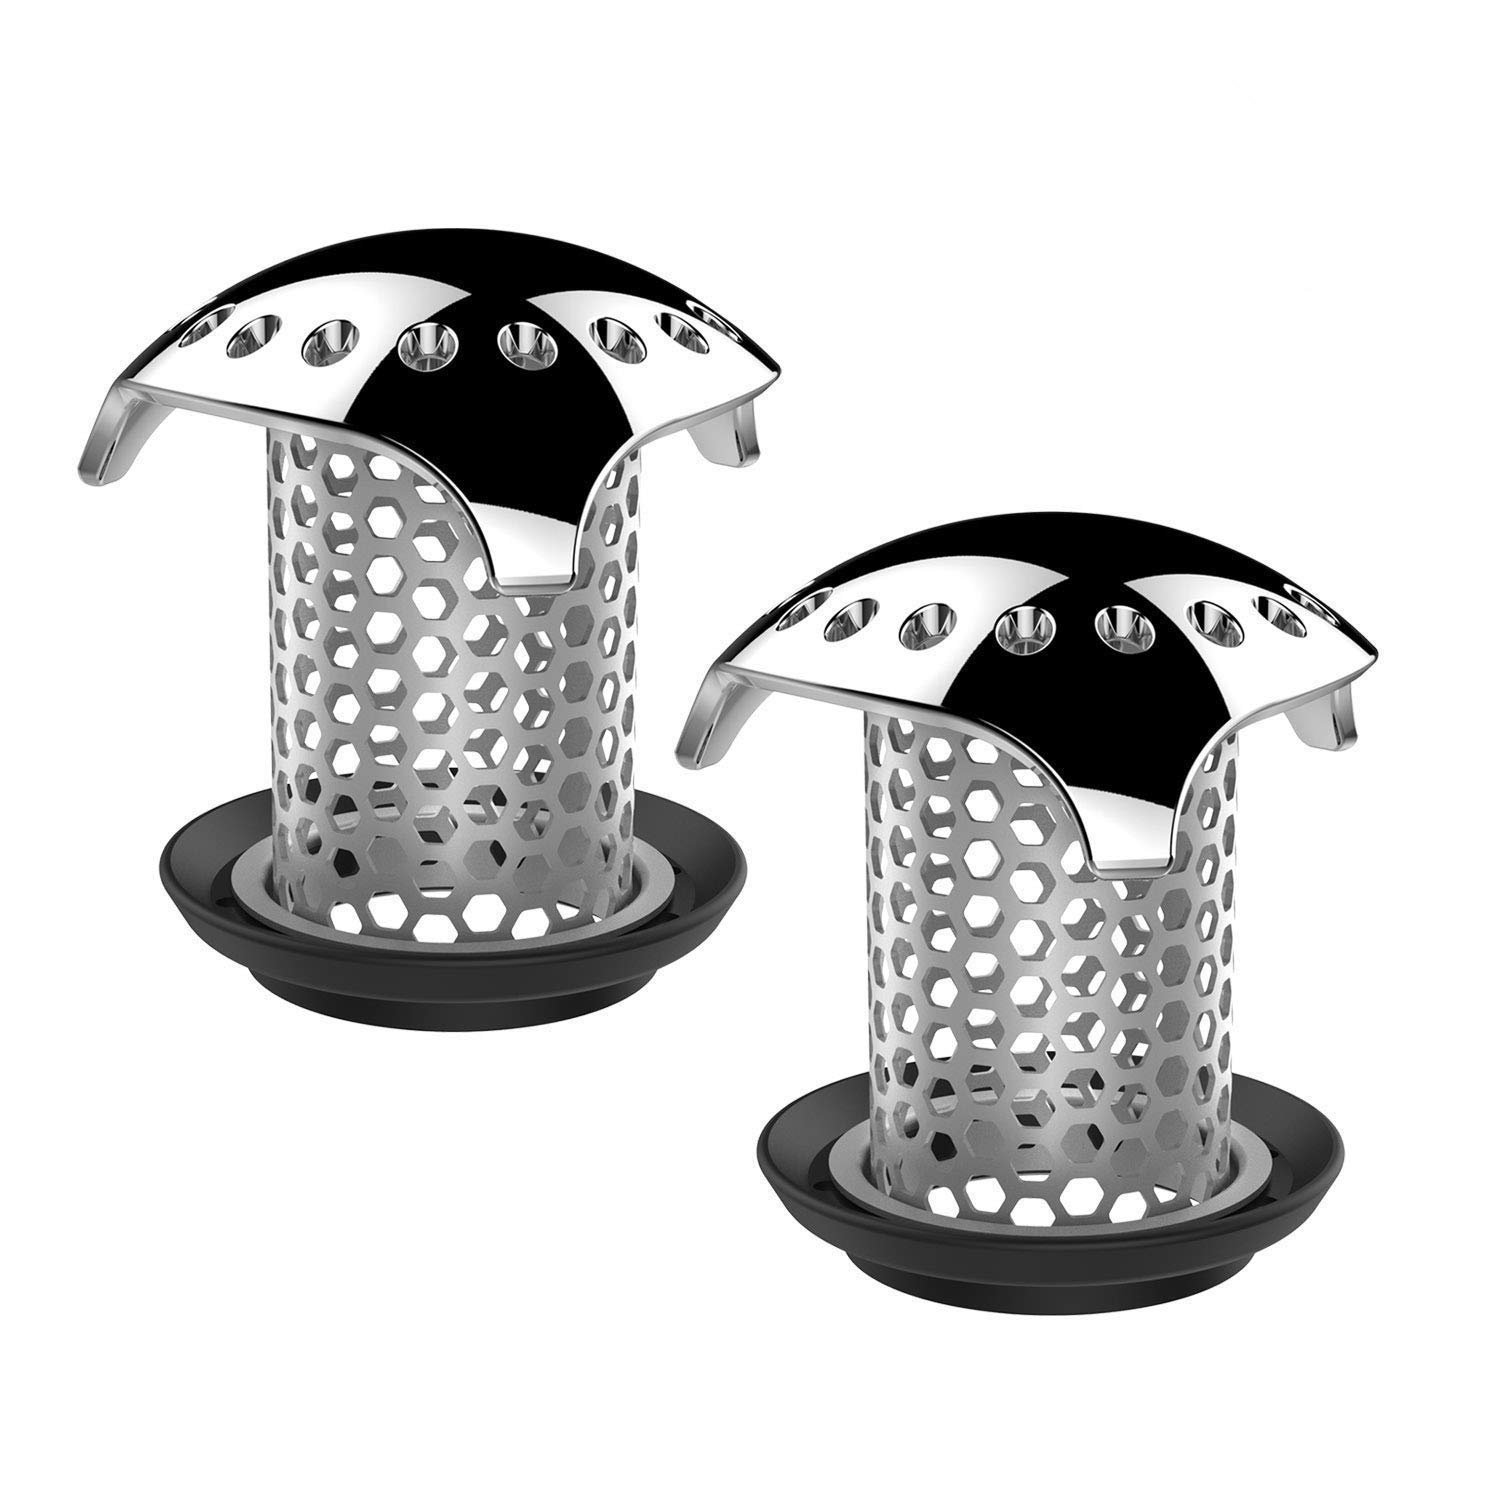 Uxoz 2 Pack Drain Hair Catcher,Stainless Steel Bathtub Drain Protector, Anti-Rust/Long Service Life, Durable Use, Match Drain Sizes from 1.35'' to 1.75'' (2) ...